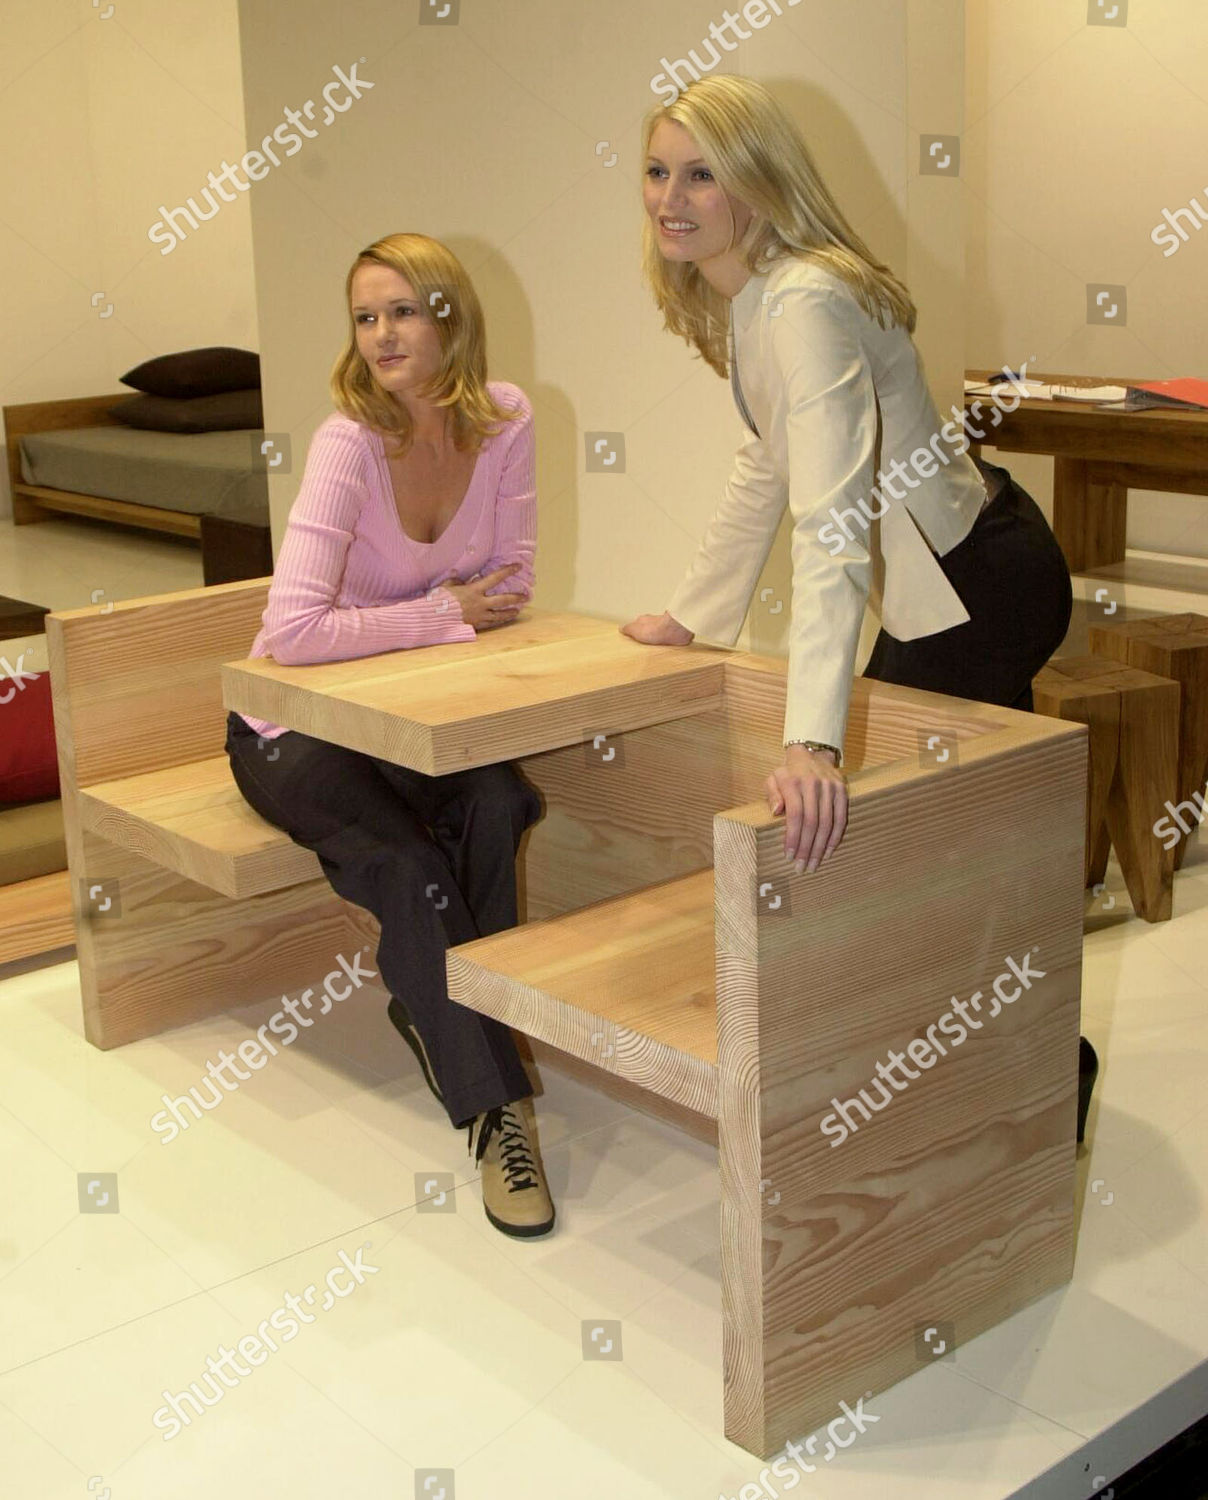 Möbel In Nrw Young Ladies Present Newly Designed Wooden Benchtable Editorial